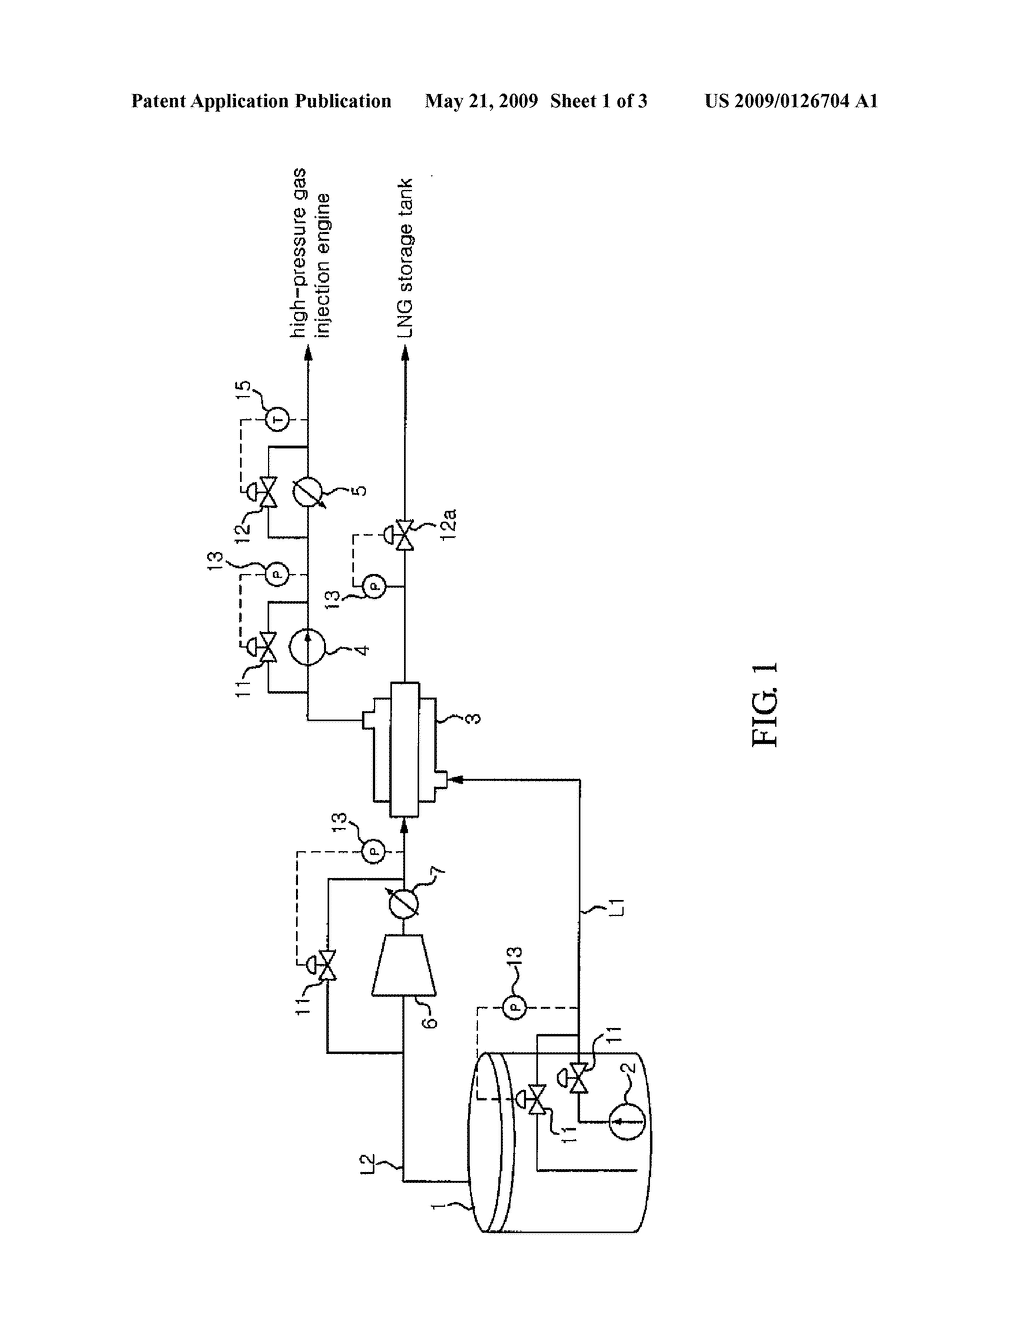 hight resolution of fuel gas supply system and method of an lng carrier diagram schematic and image 02